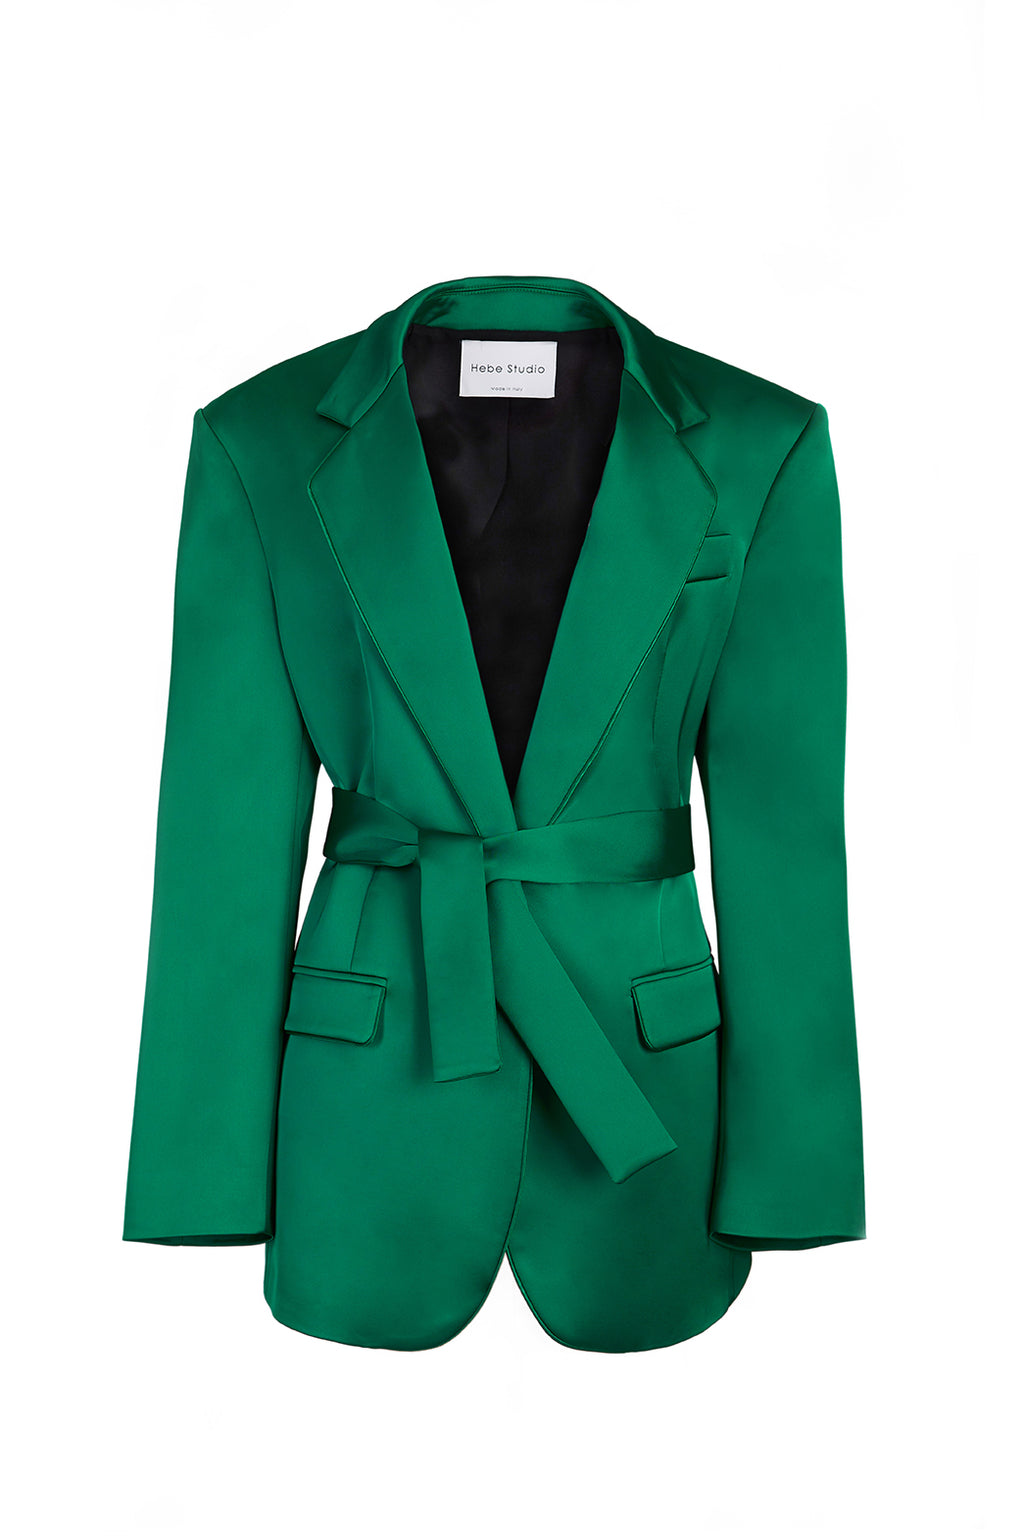 The Green Satin Lover Blazer with belt